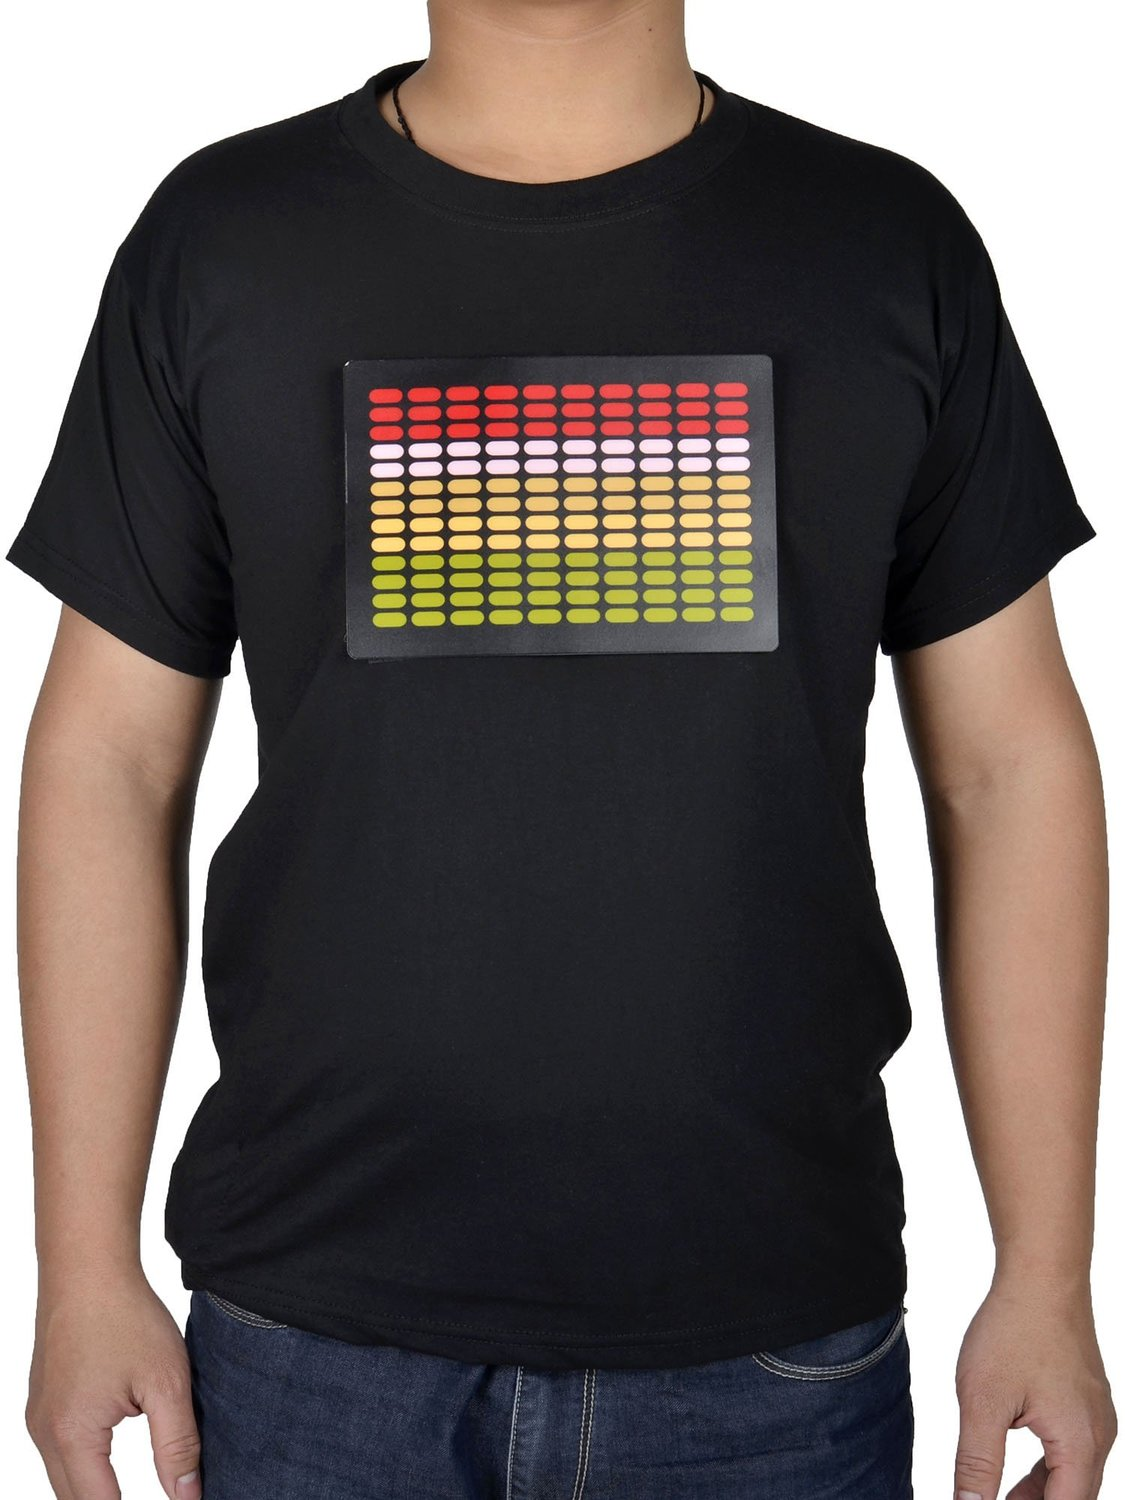 Sound Activated TShirt